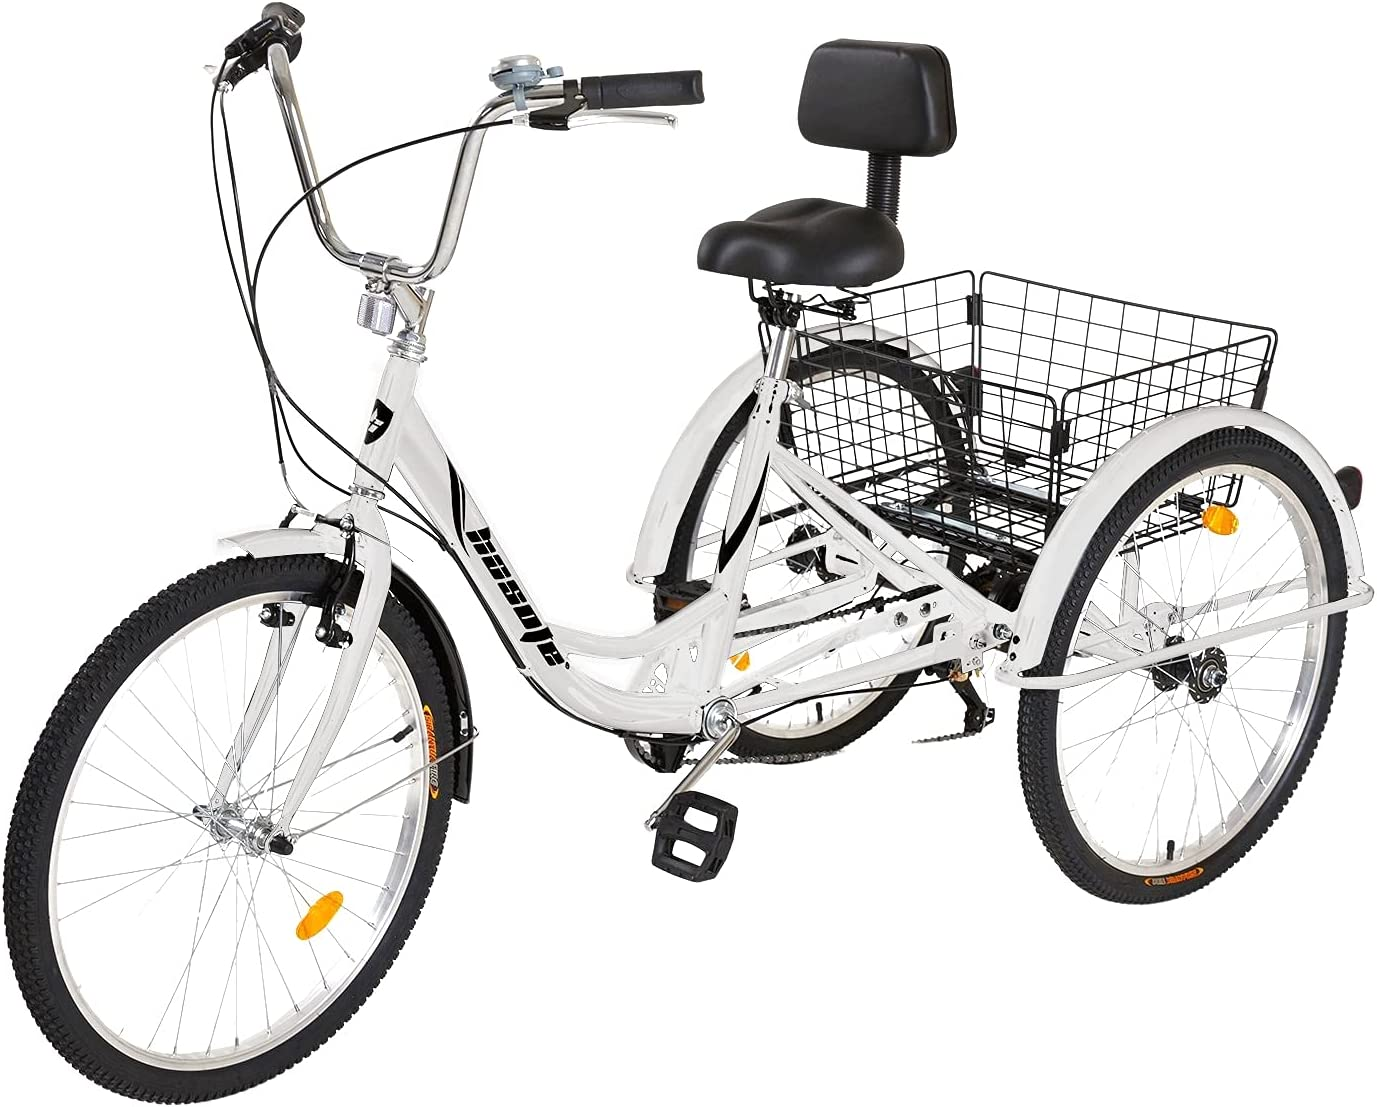 hosote Adult Tricycle 24 Large discharge sale inch Wheels Shiman Al sold out. Bike Three Cruiser